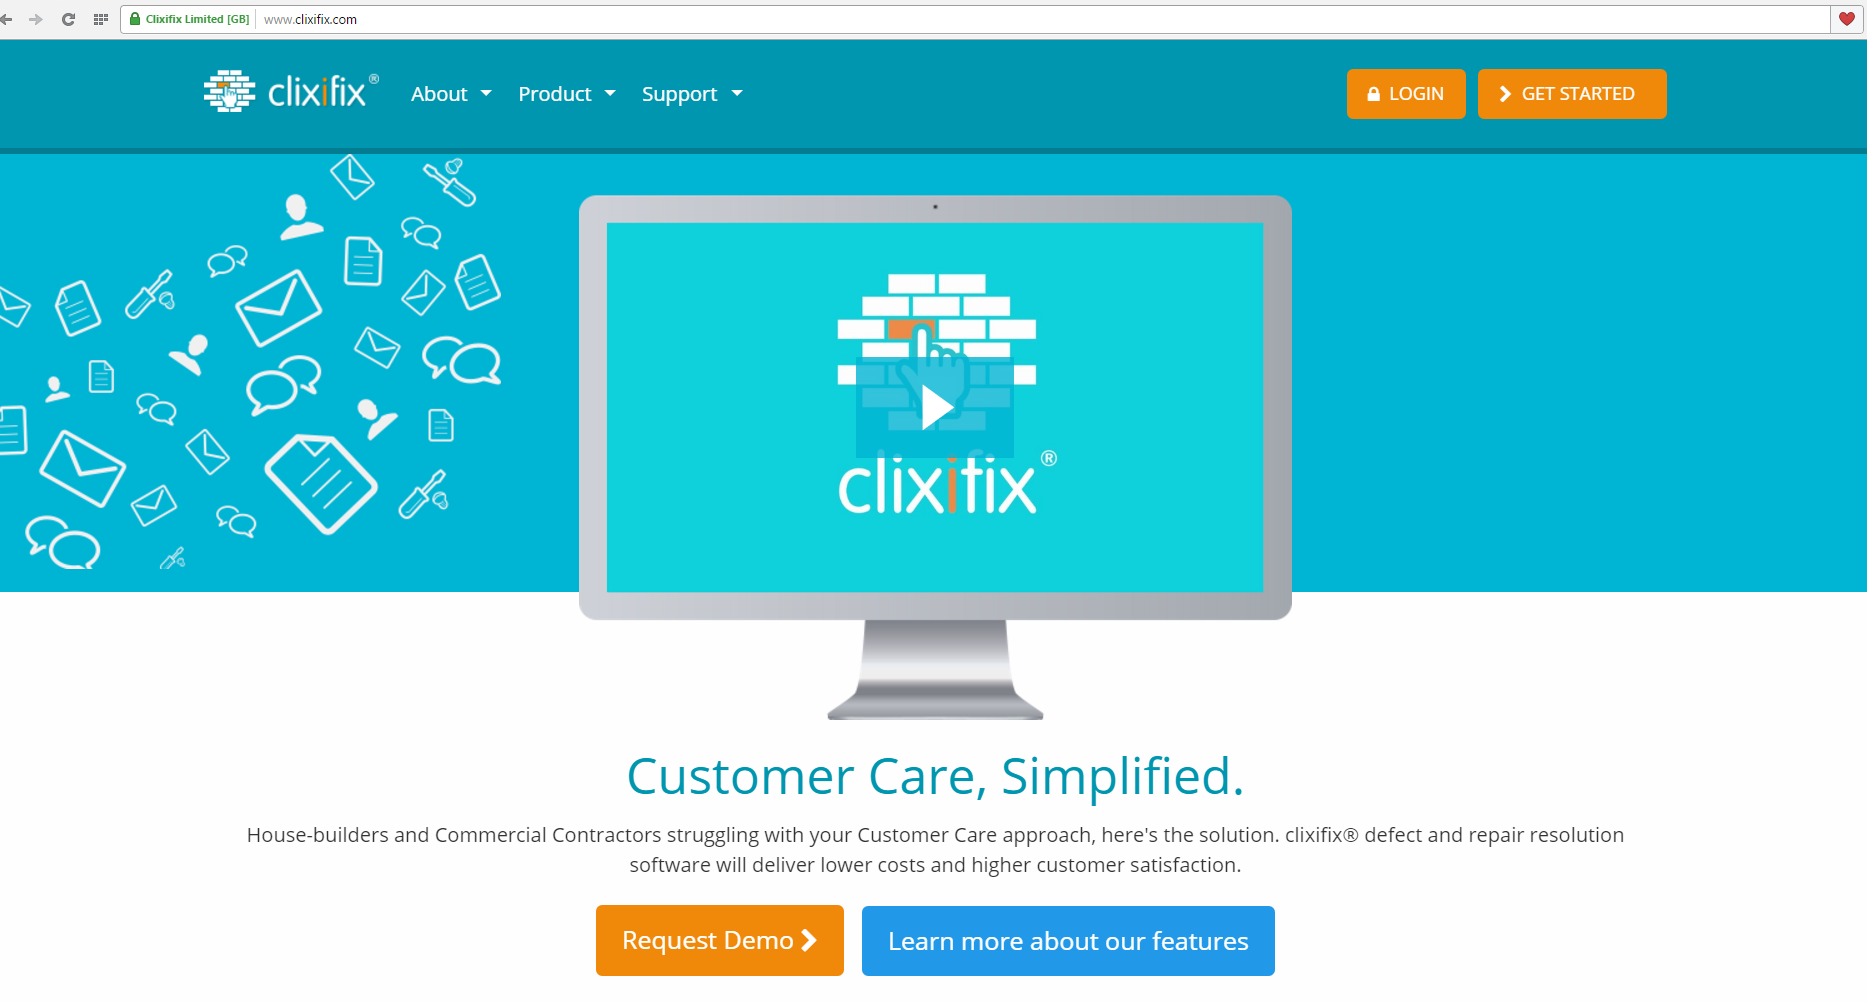 Customer account login/downloader - With Clixifix There Is No Software To Download Or Install All You Need Is A Web Browser And Off You Go